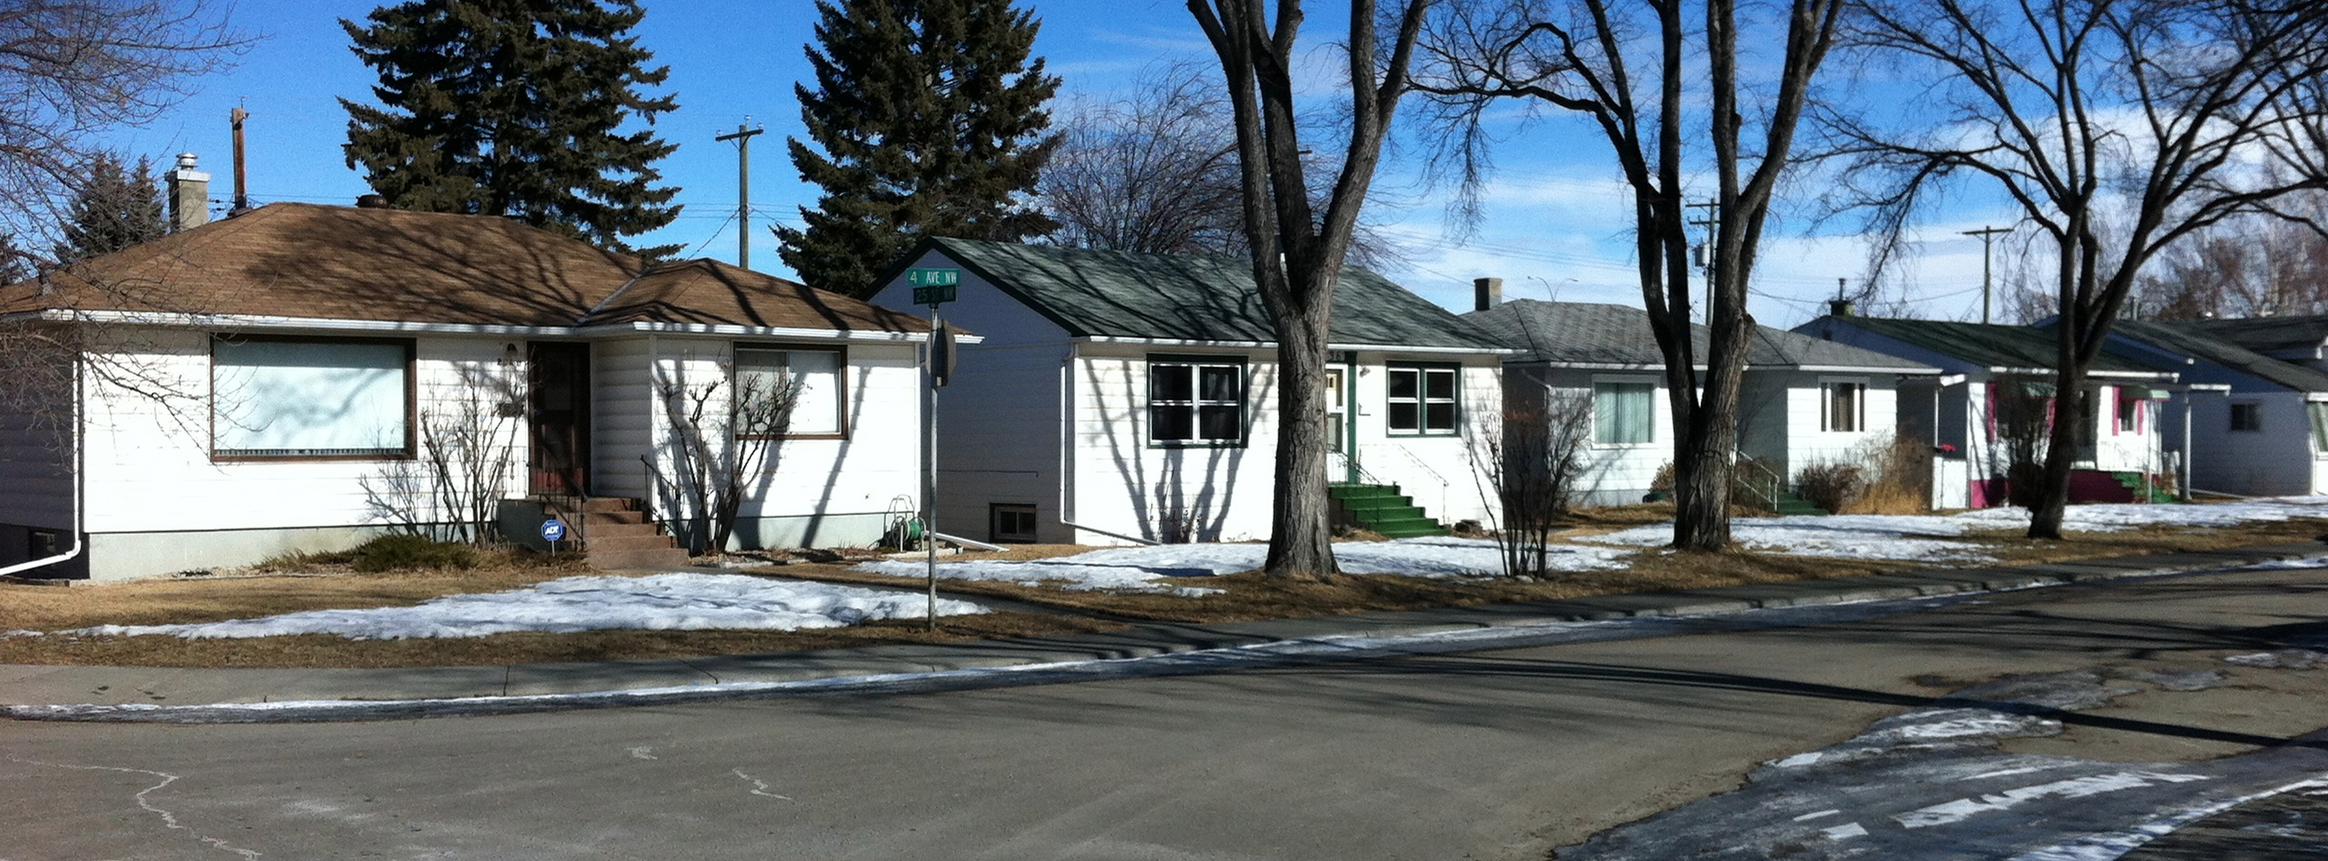 Calgary's inner-city communities were dominated by these small single story homes on 50 by 120 foot lots until the 1980s when new infill homes started to become popular.